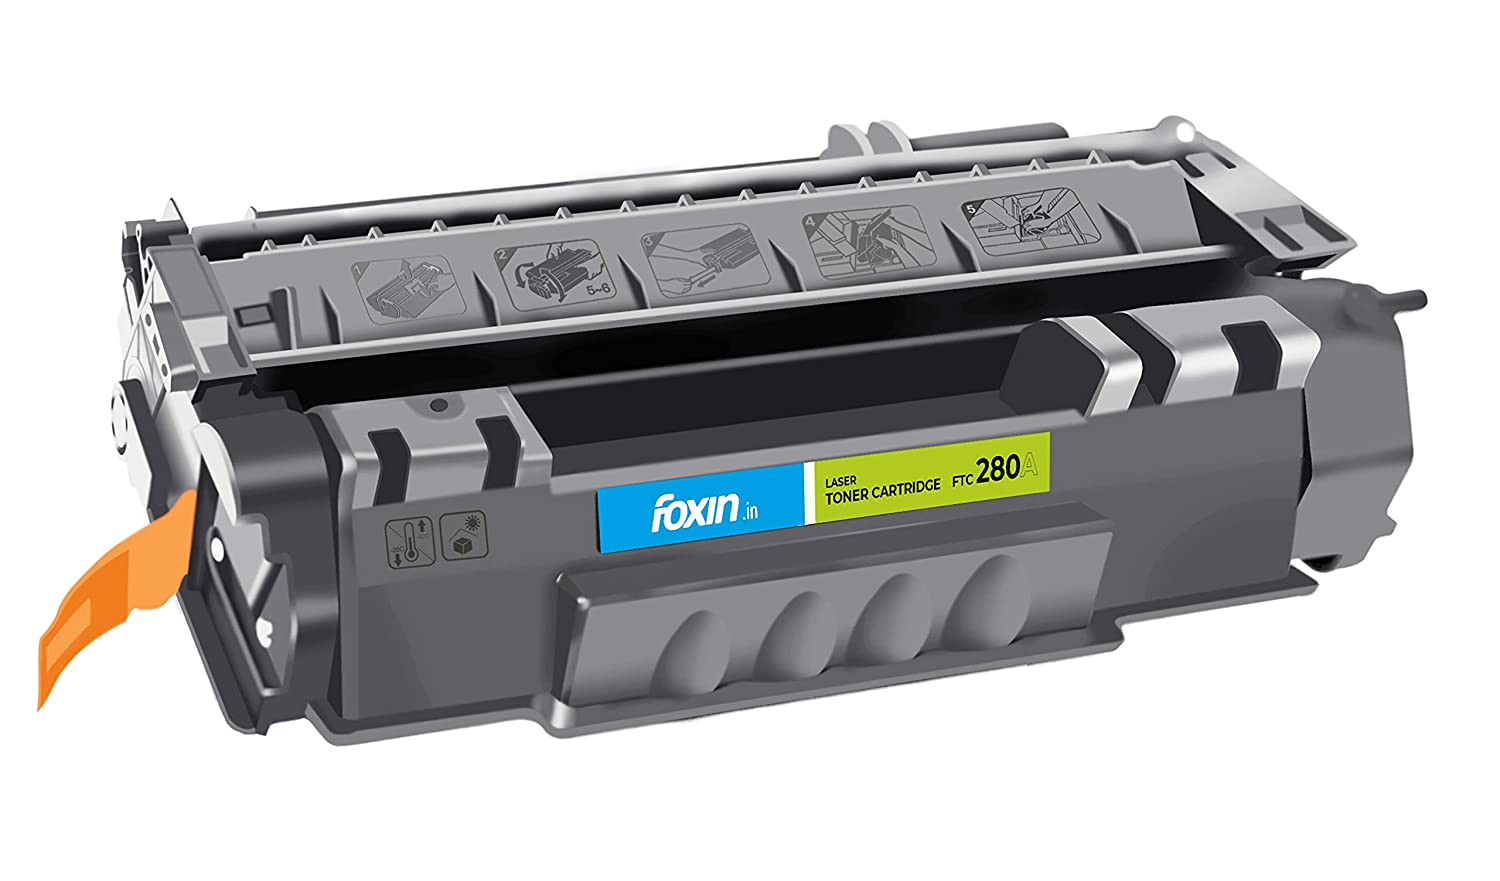 Foxin FTC280A Toner Cartridge Toner Cartridges